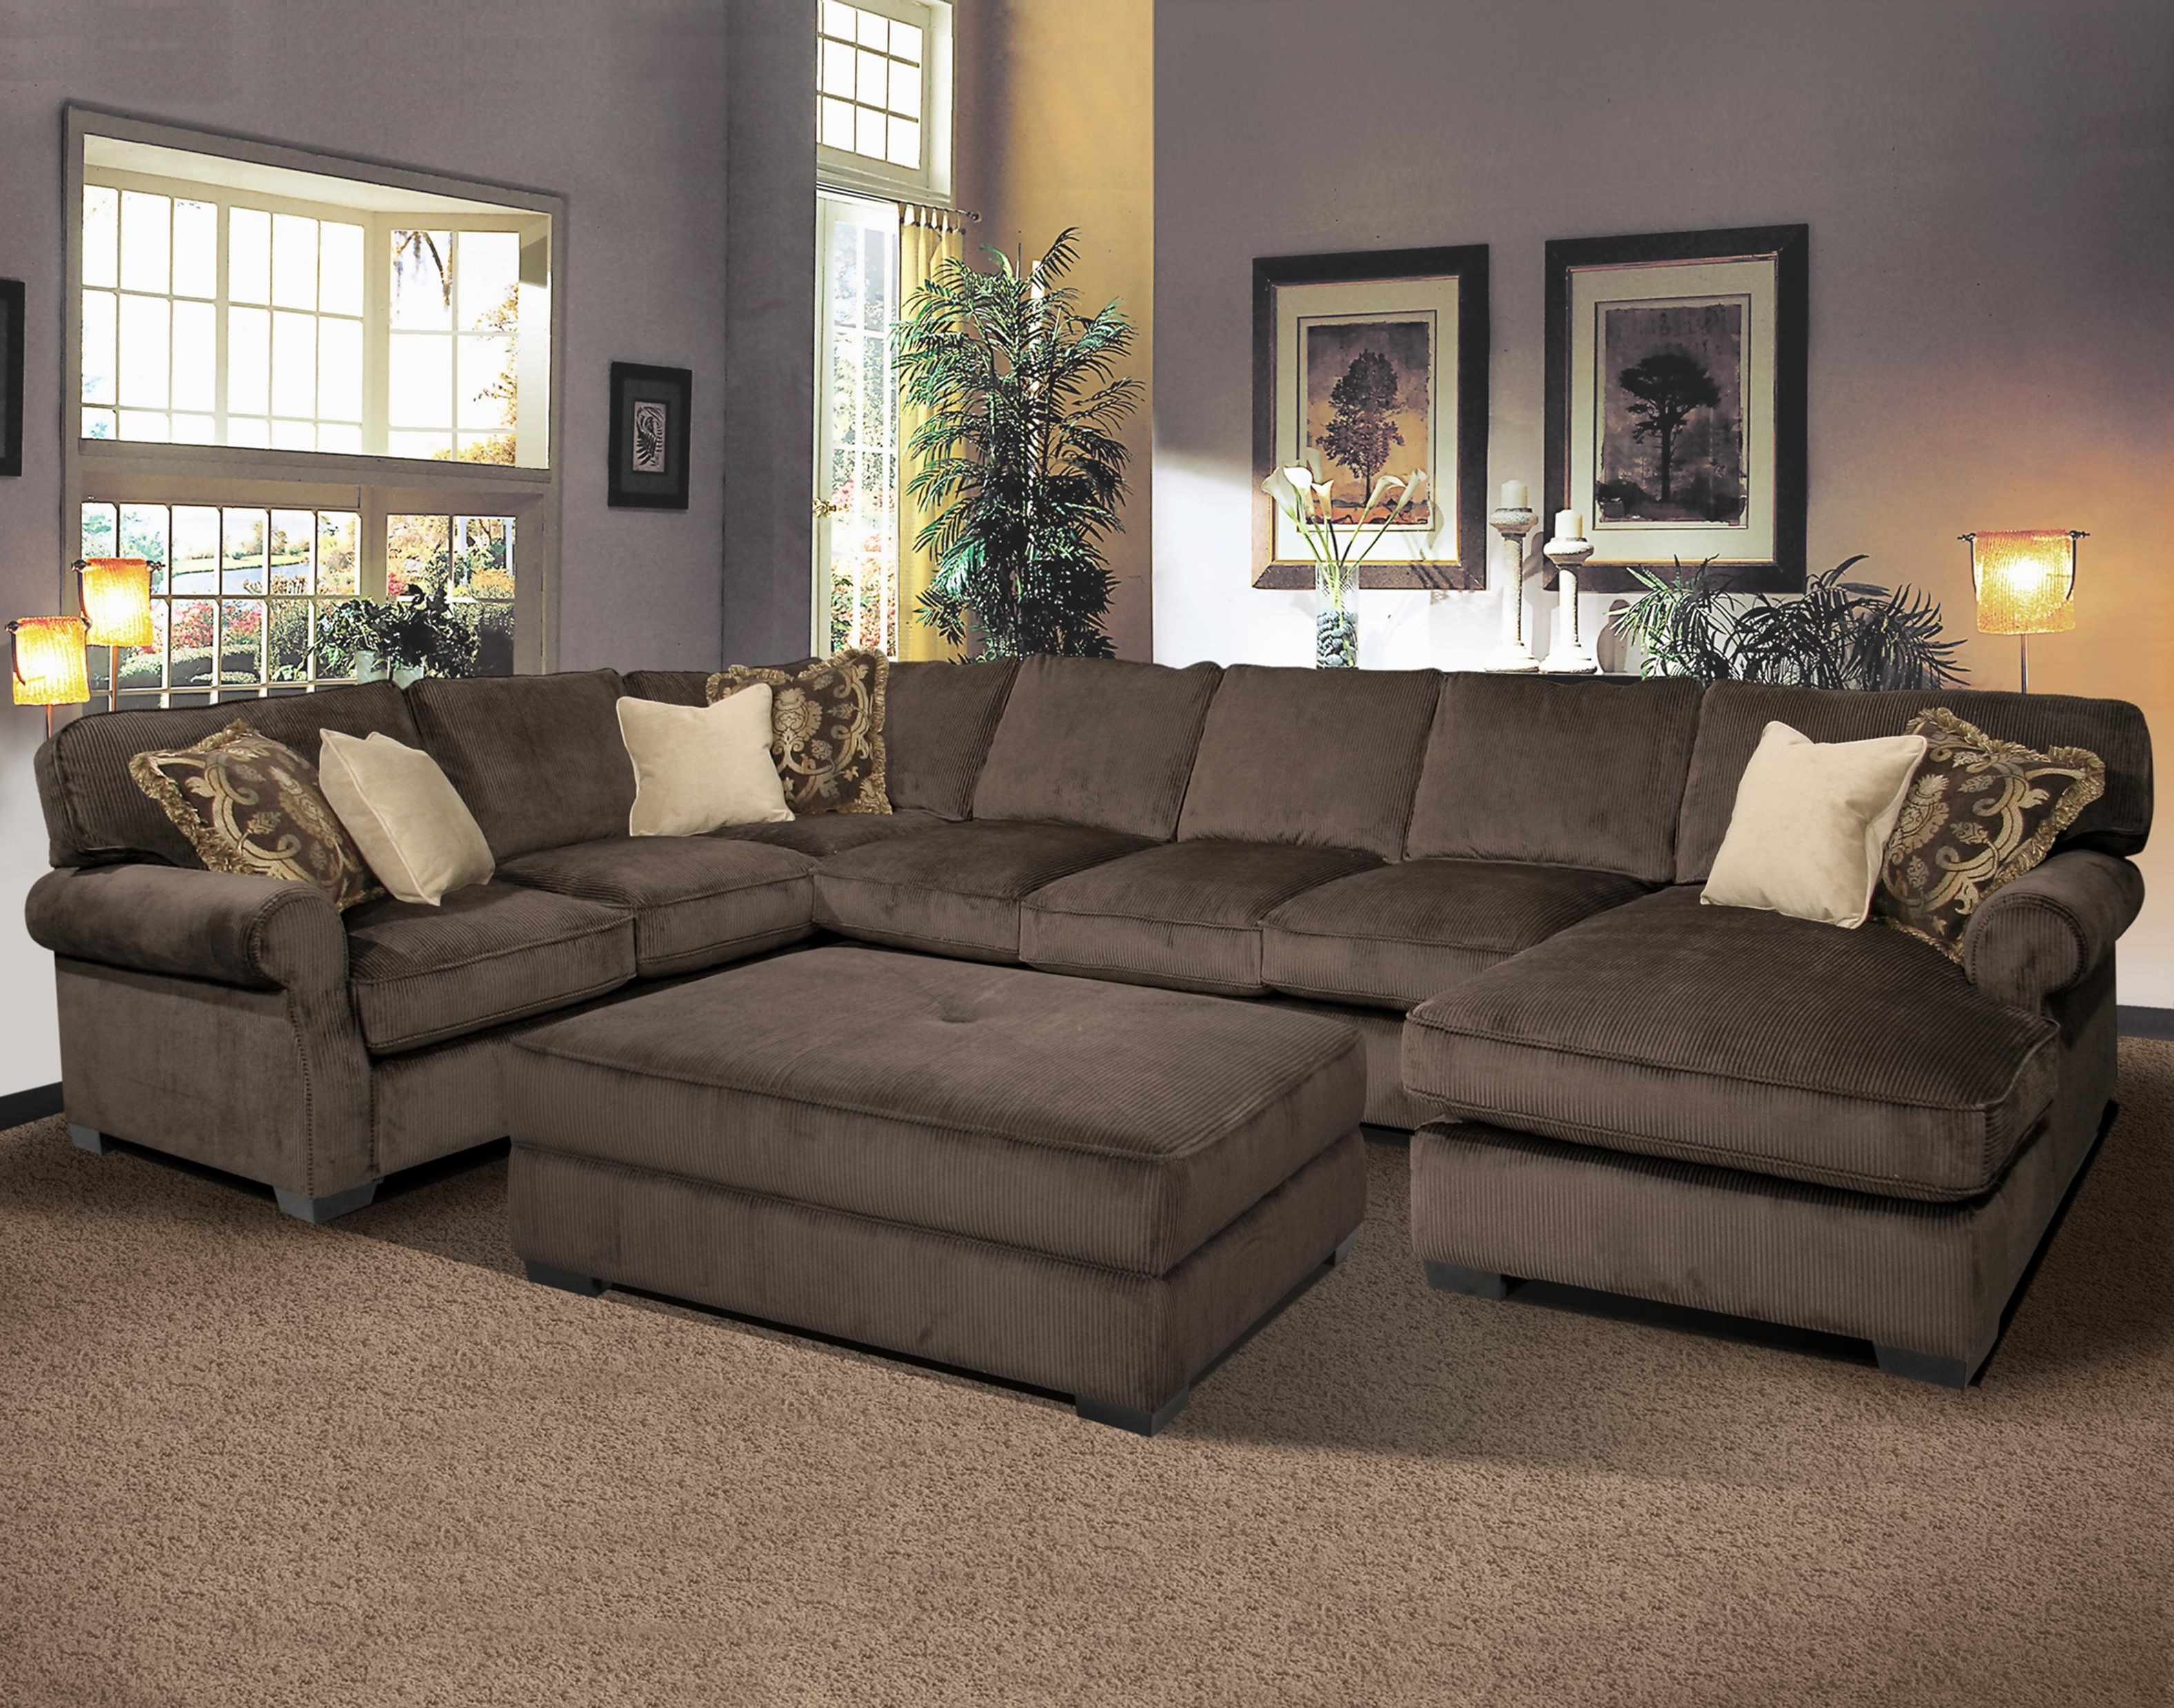 Well Known Quality Sectional Sofas Within Free Quality Sectional Sofas # (View 8 of 20)